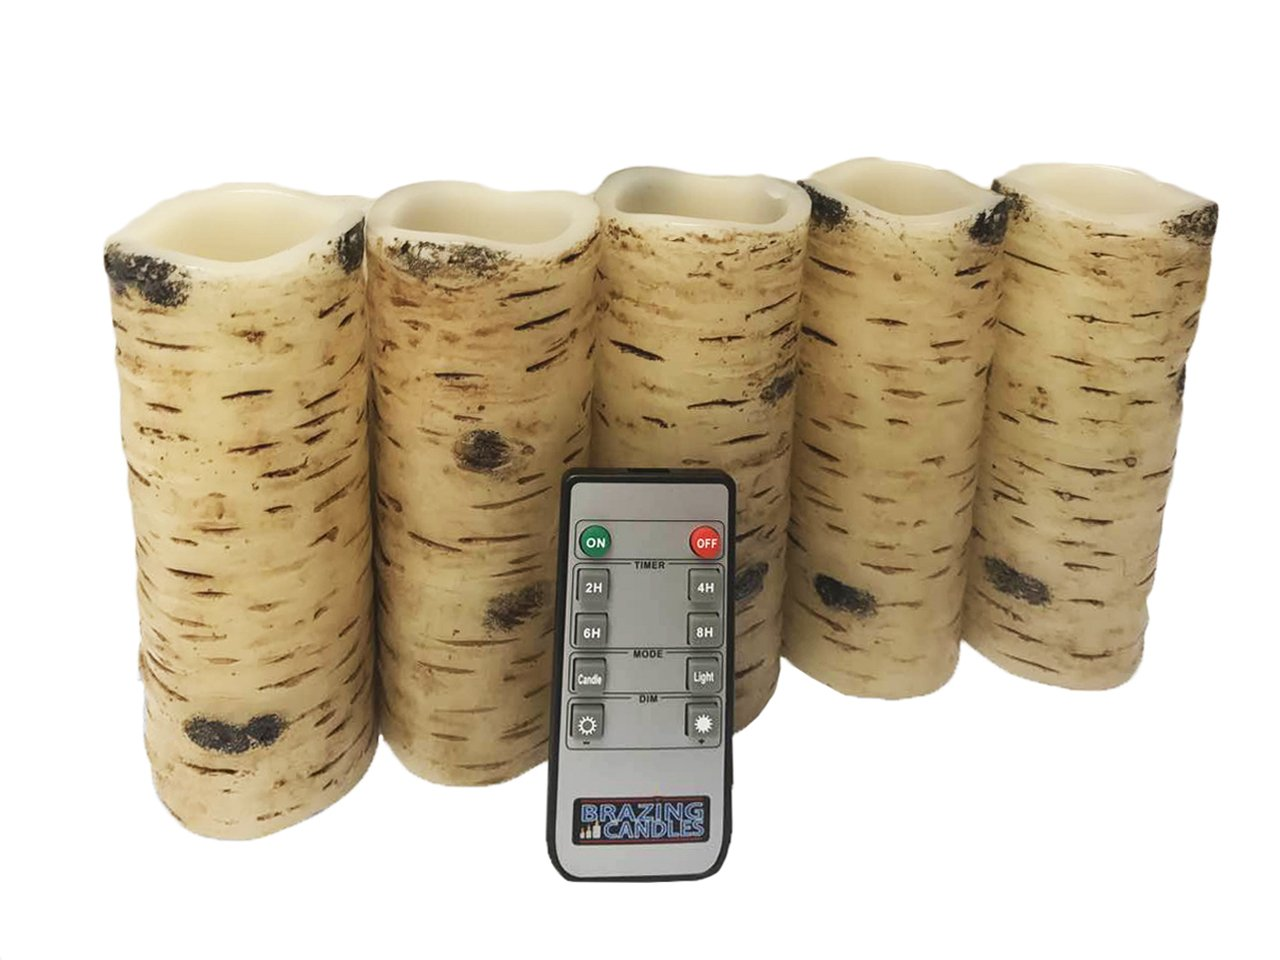 BRAZING CANDLES 5 pc LED Candle Set, Birch, 2'' x 6'', w/remote control LED Candle Wave bite bark EFFECT, Birch wood,w/10 key remote control